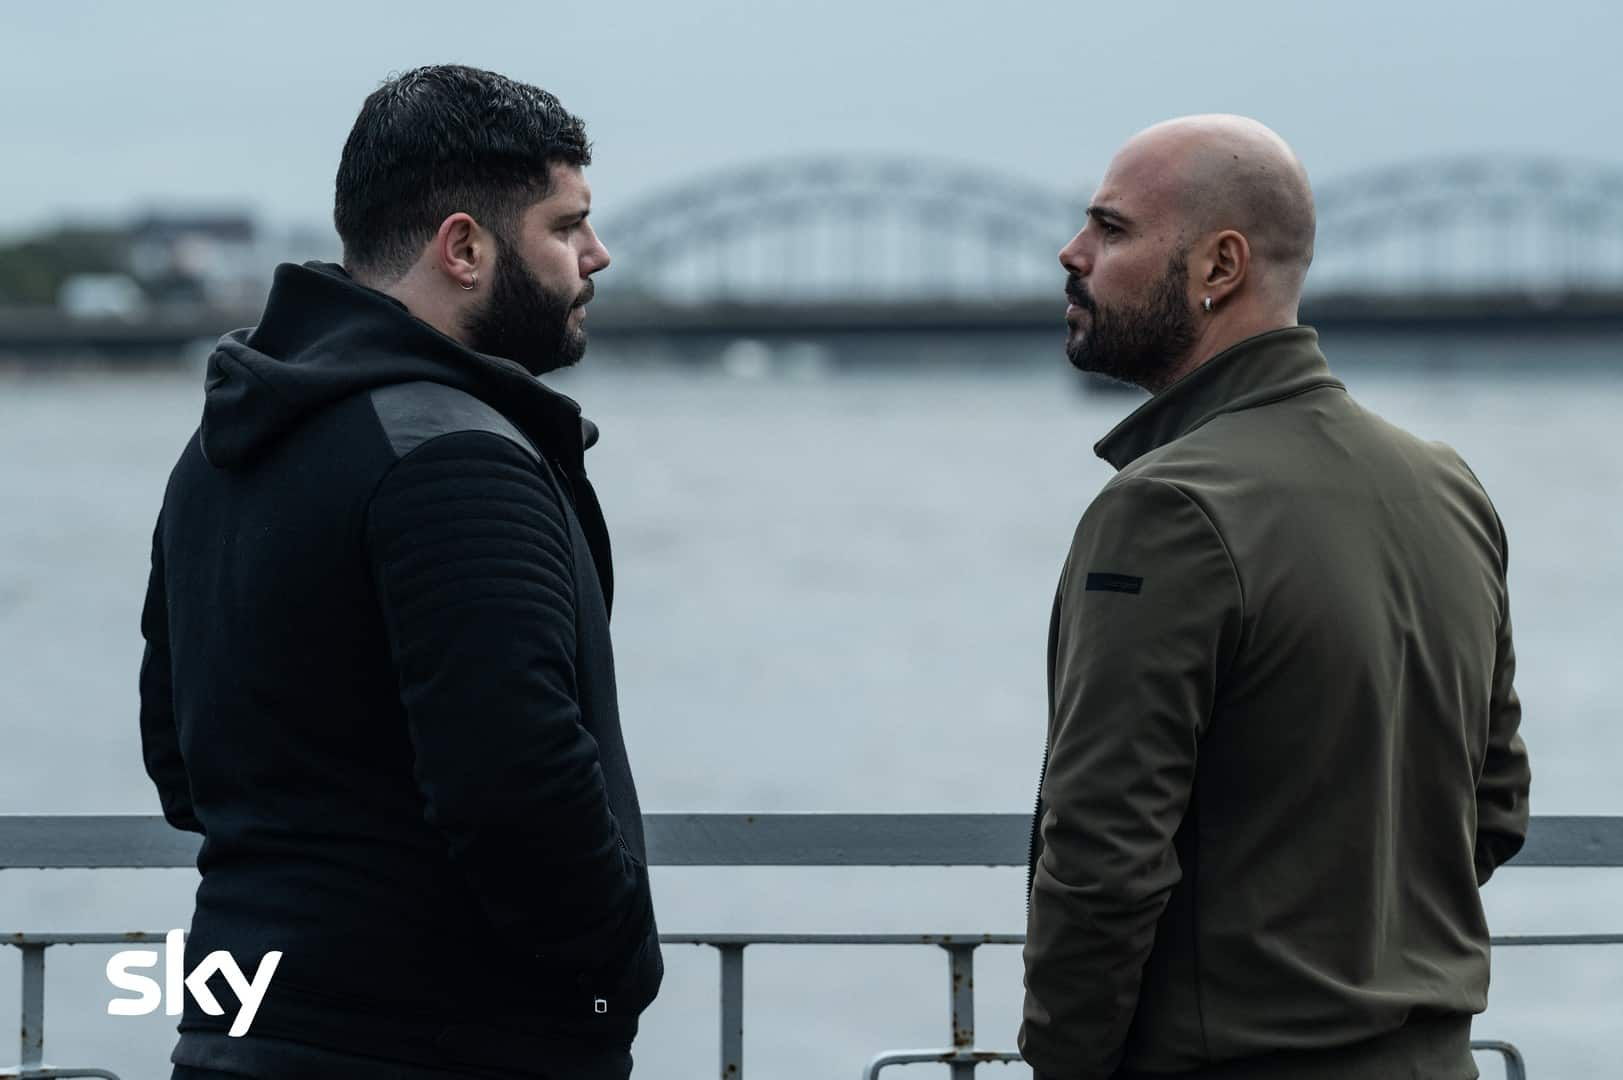 Gomorra cinematographe.it